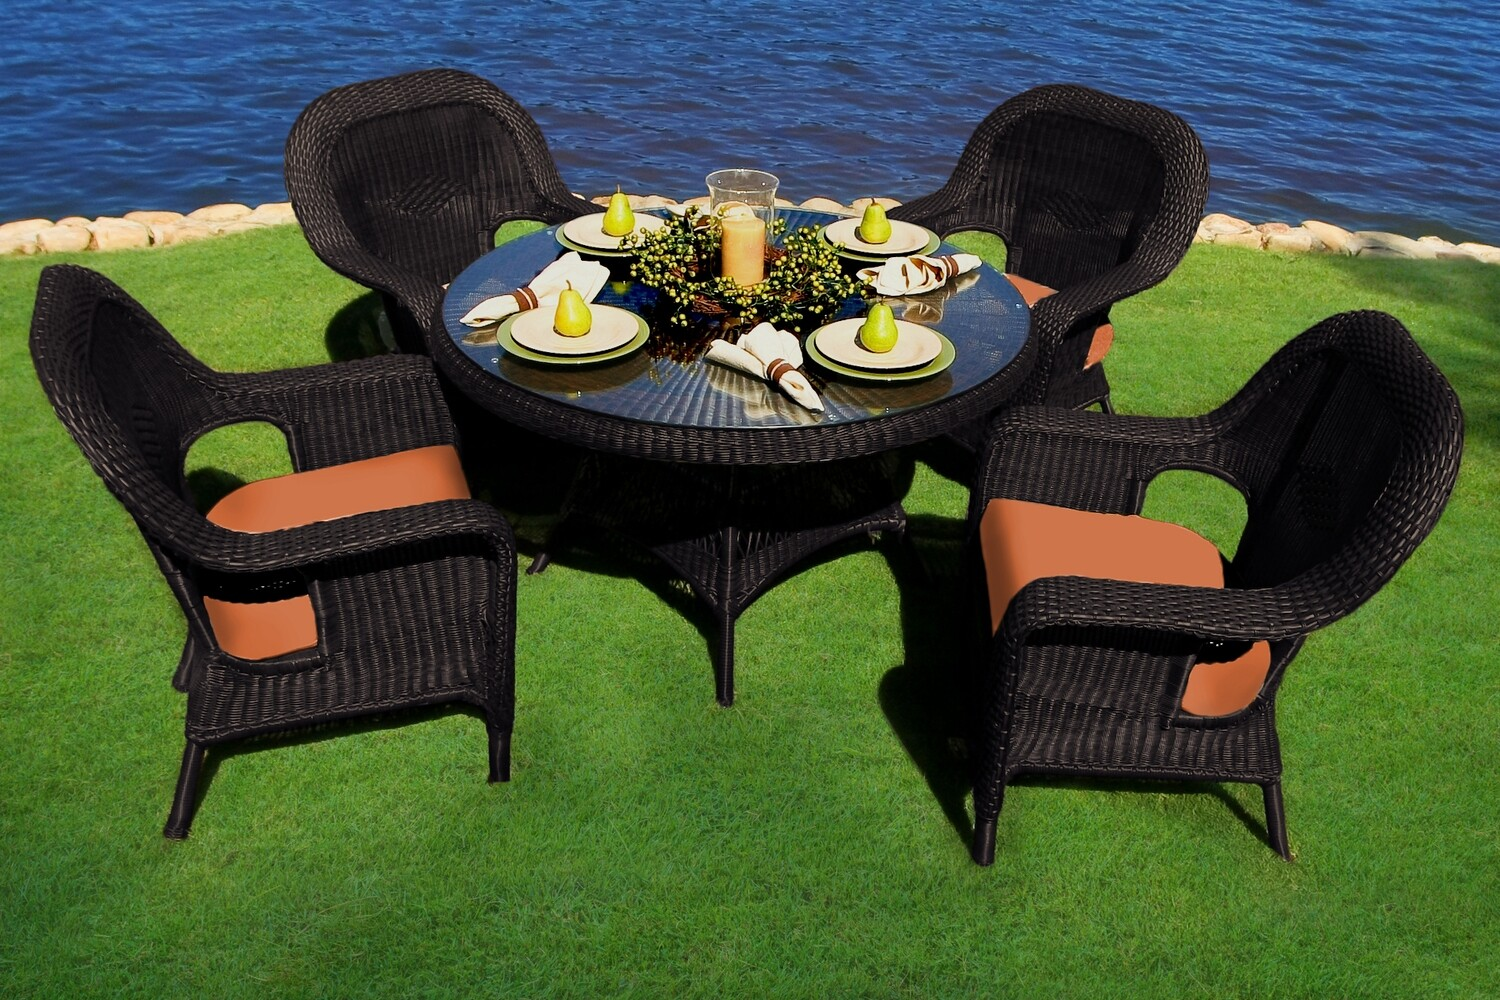 Sea Pine Tortoise Wicker 5 Piece Dining Set 4 Chairs With Glass Table